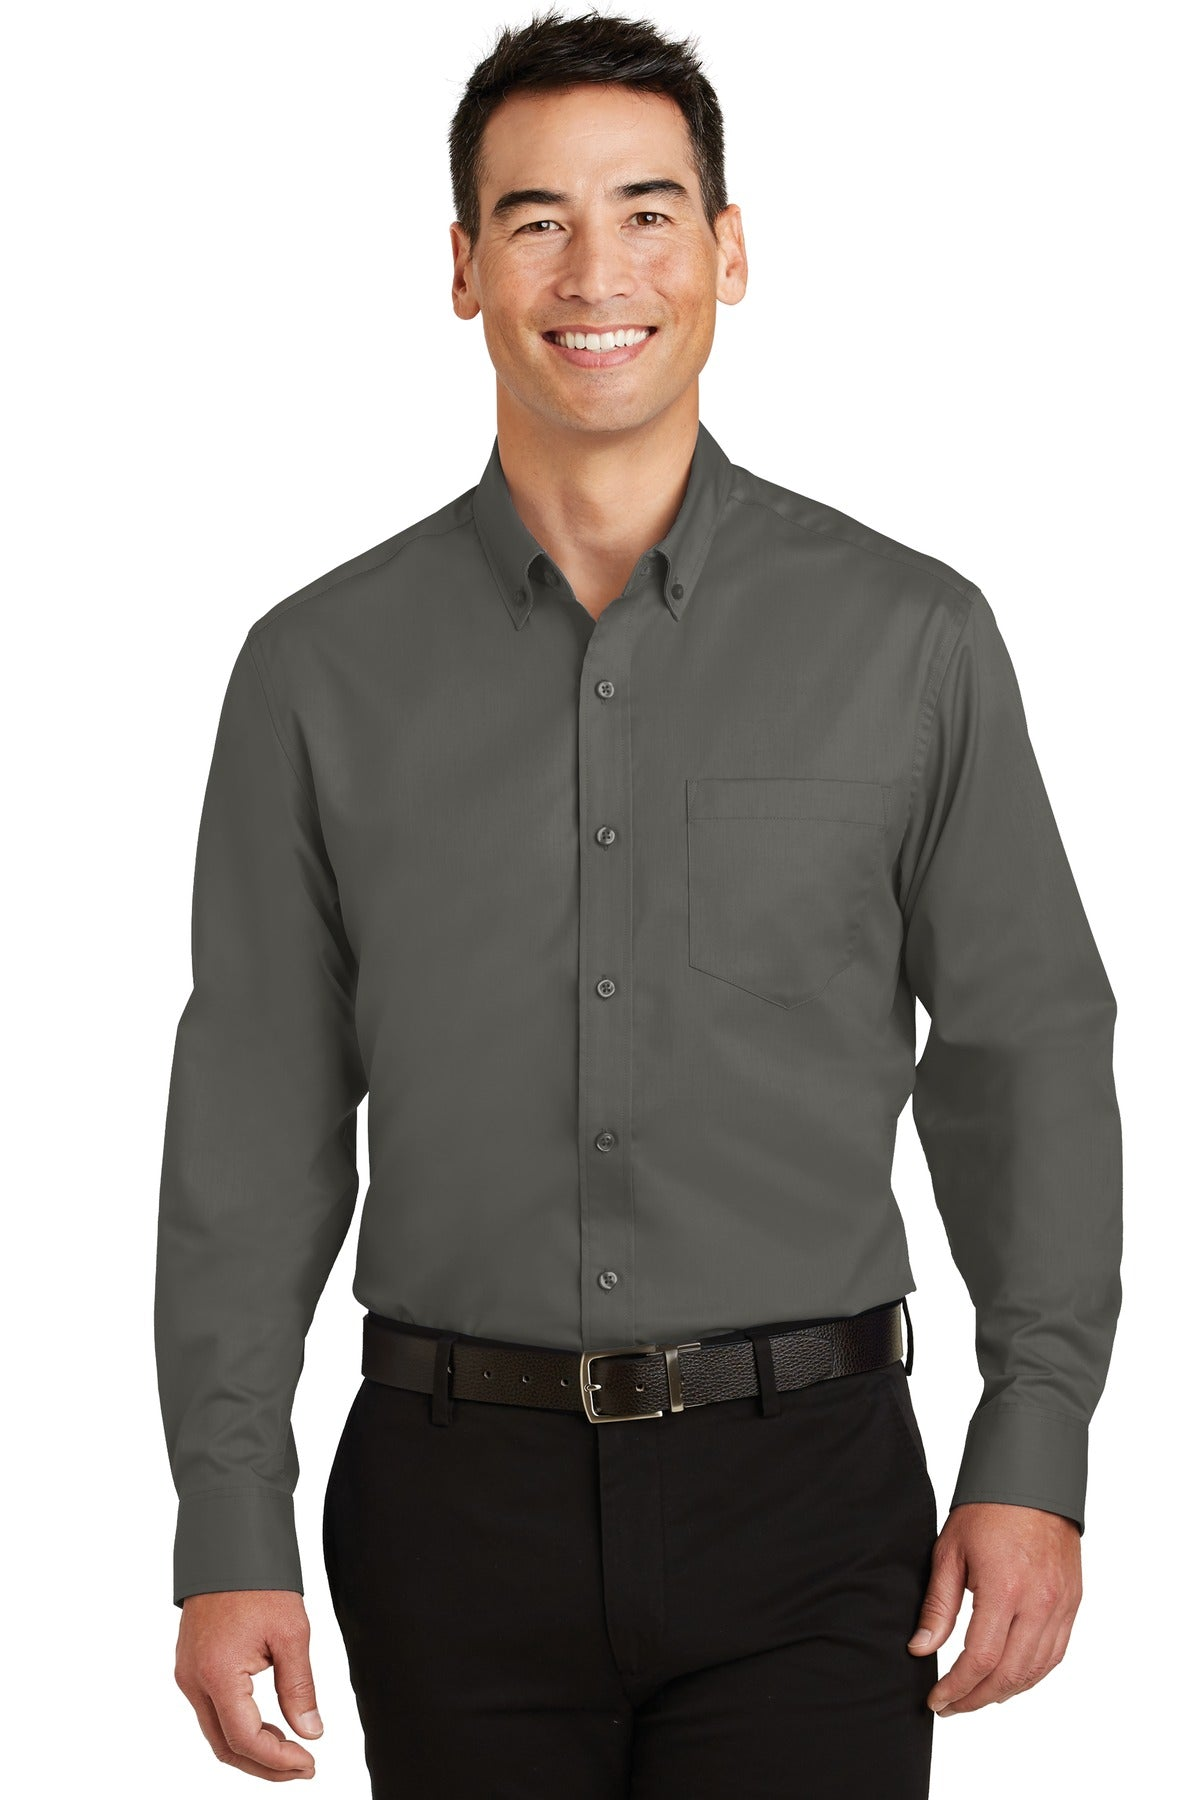 Red Port Authority Tall Silk Touch Polo with Pocket.